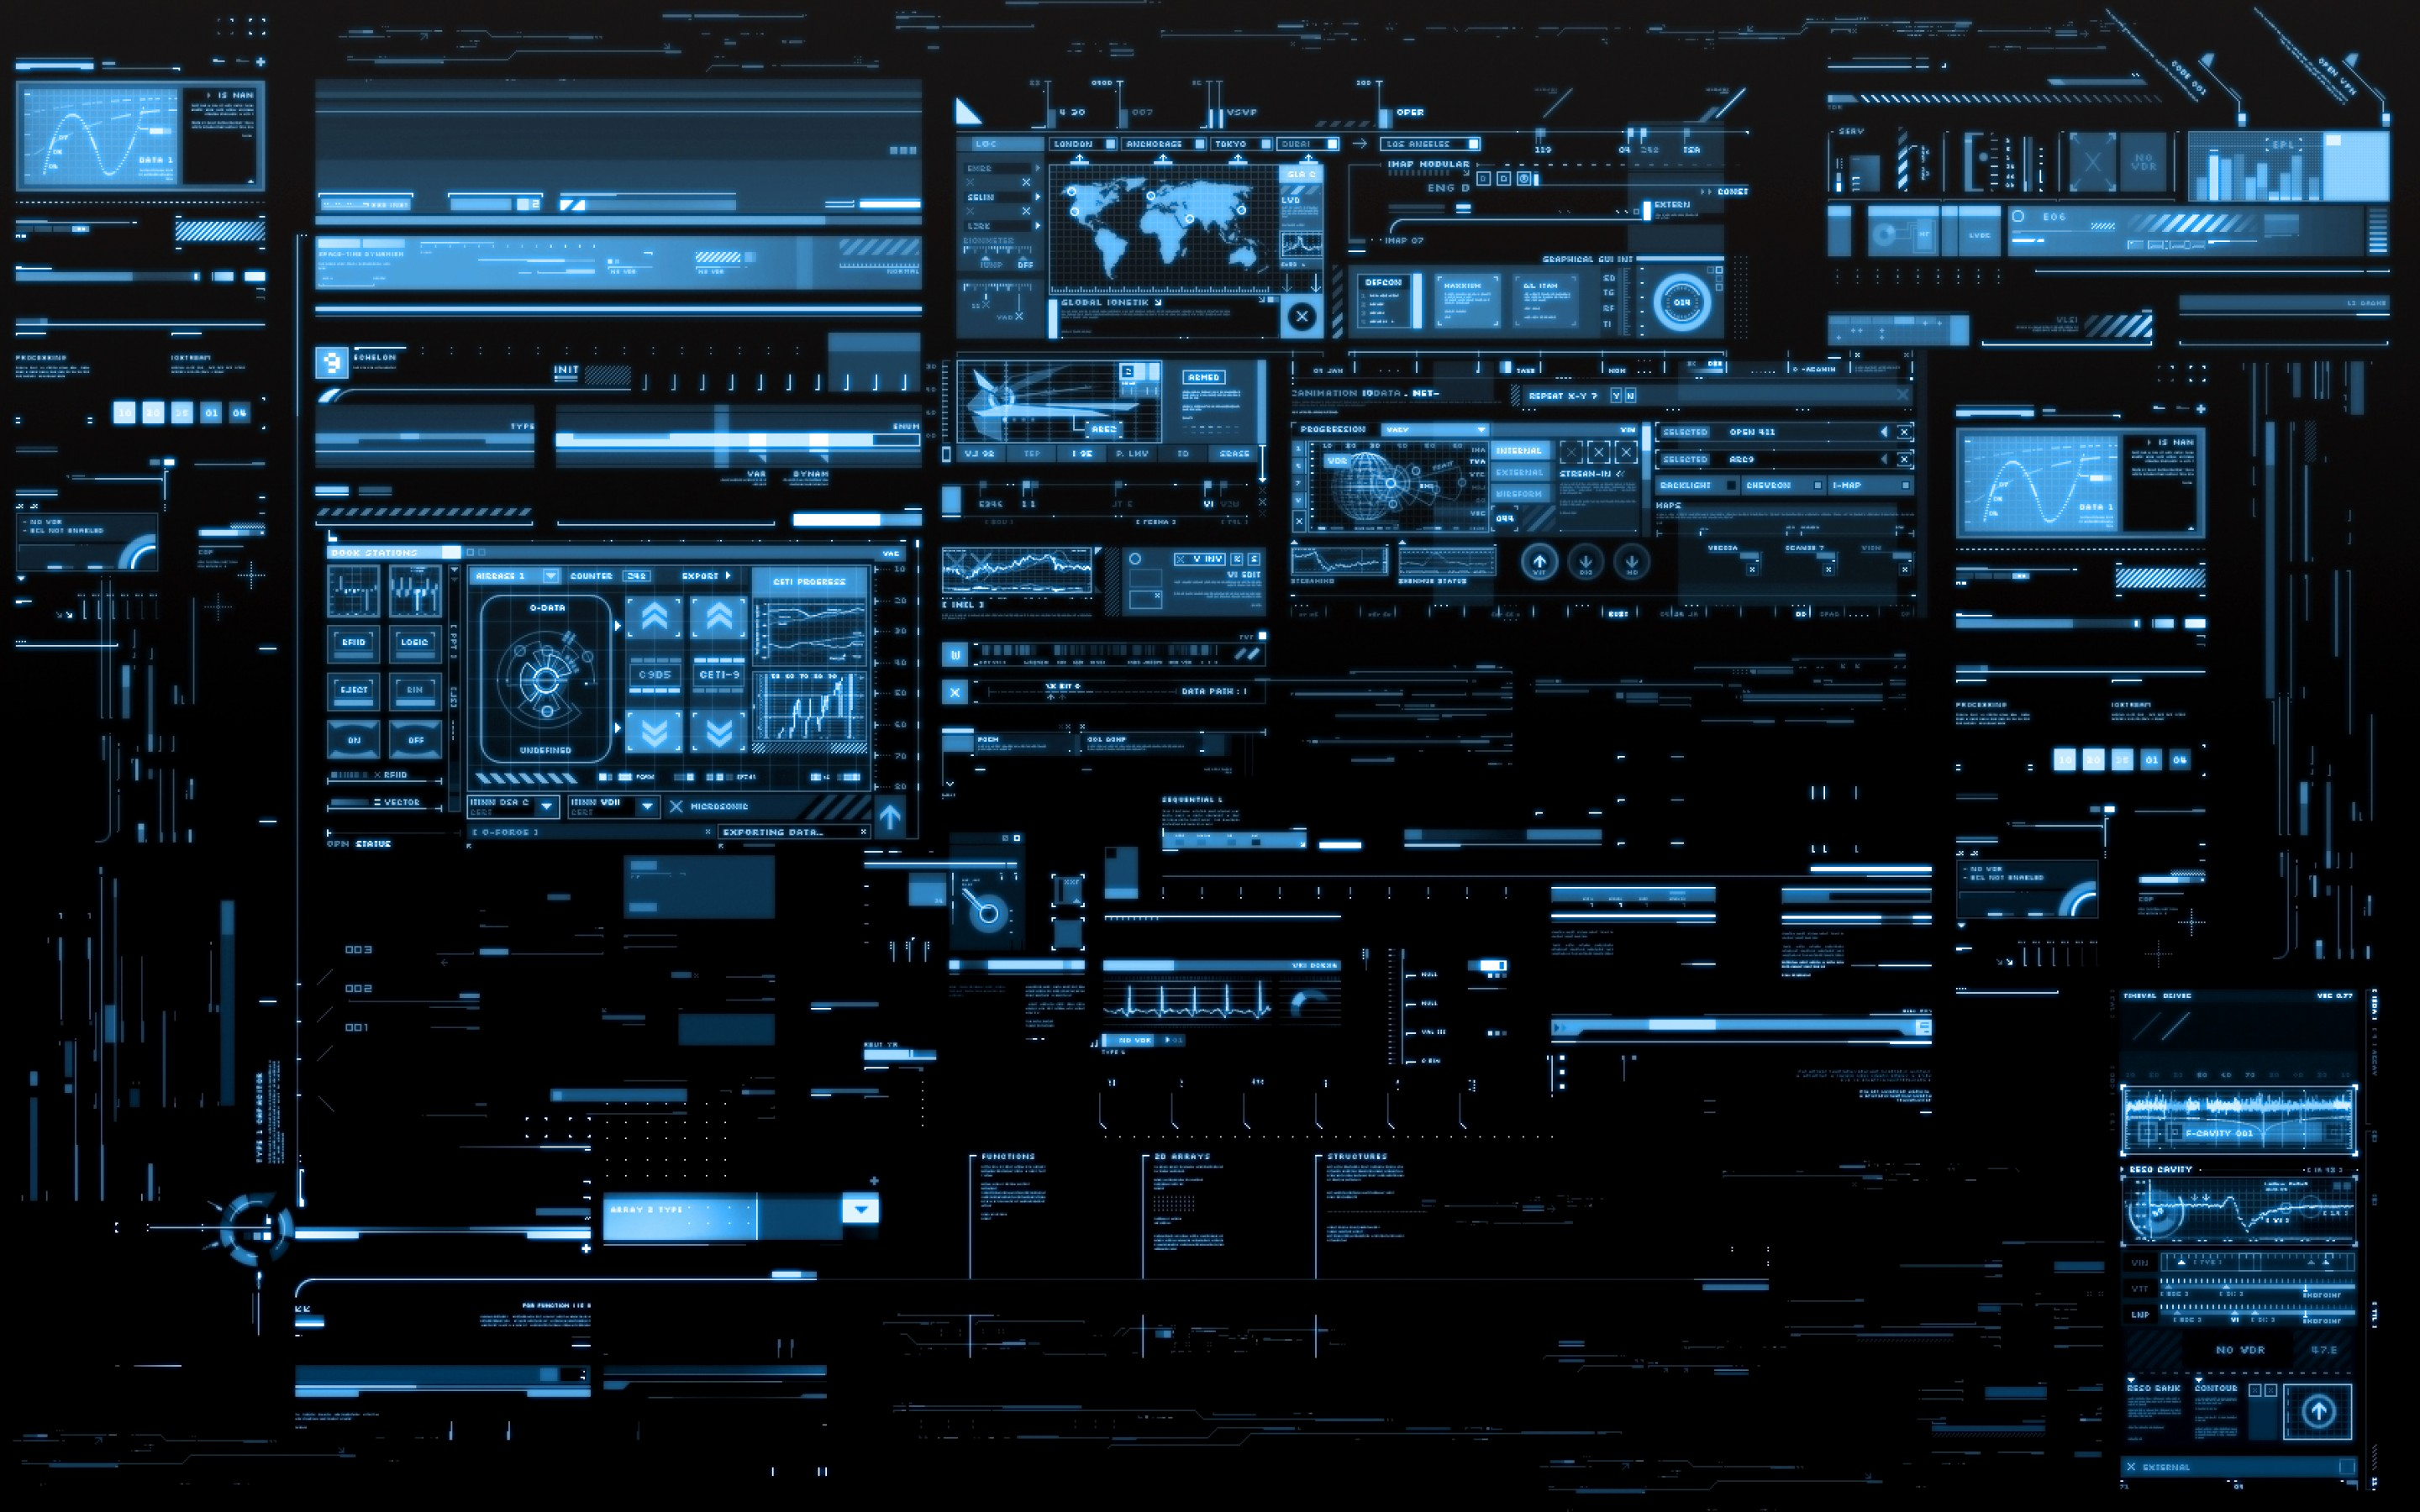 10 hd tech wallpapers